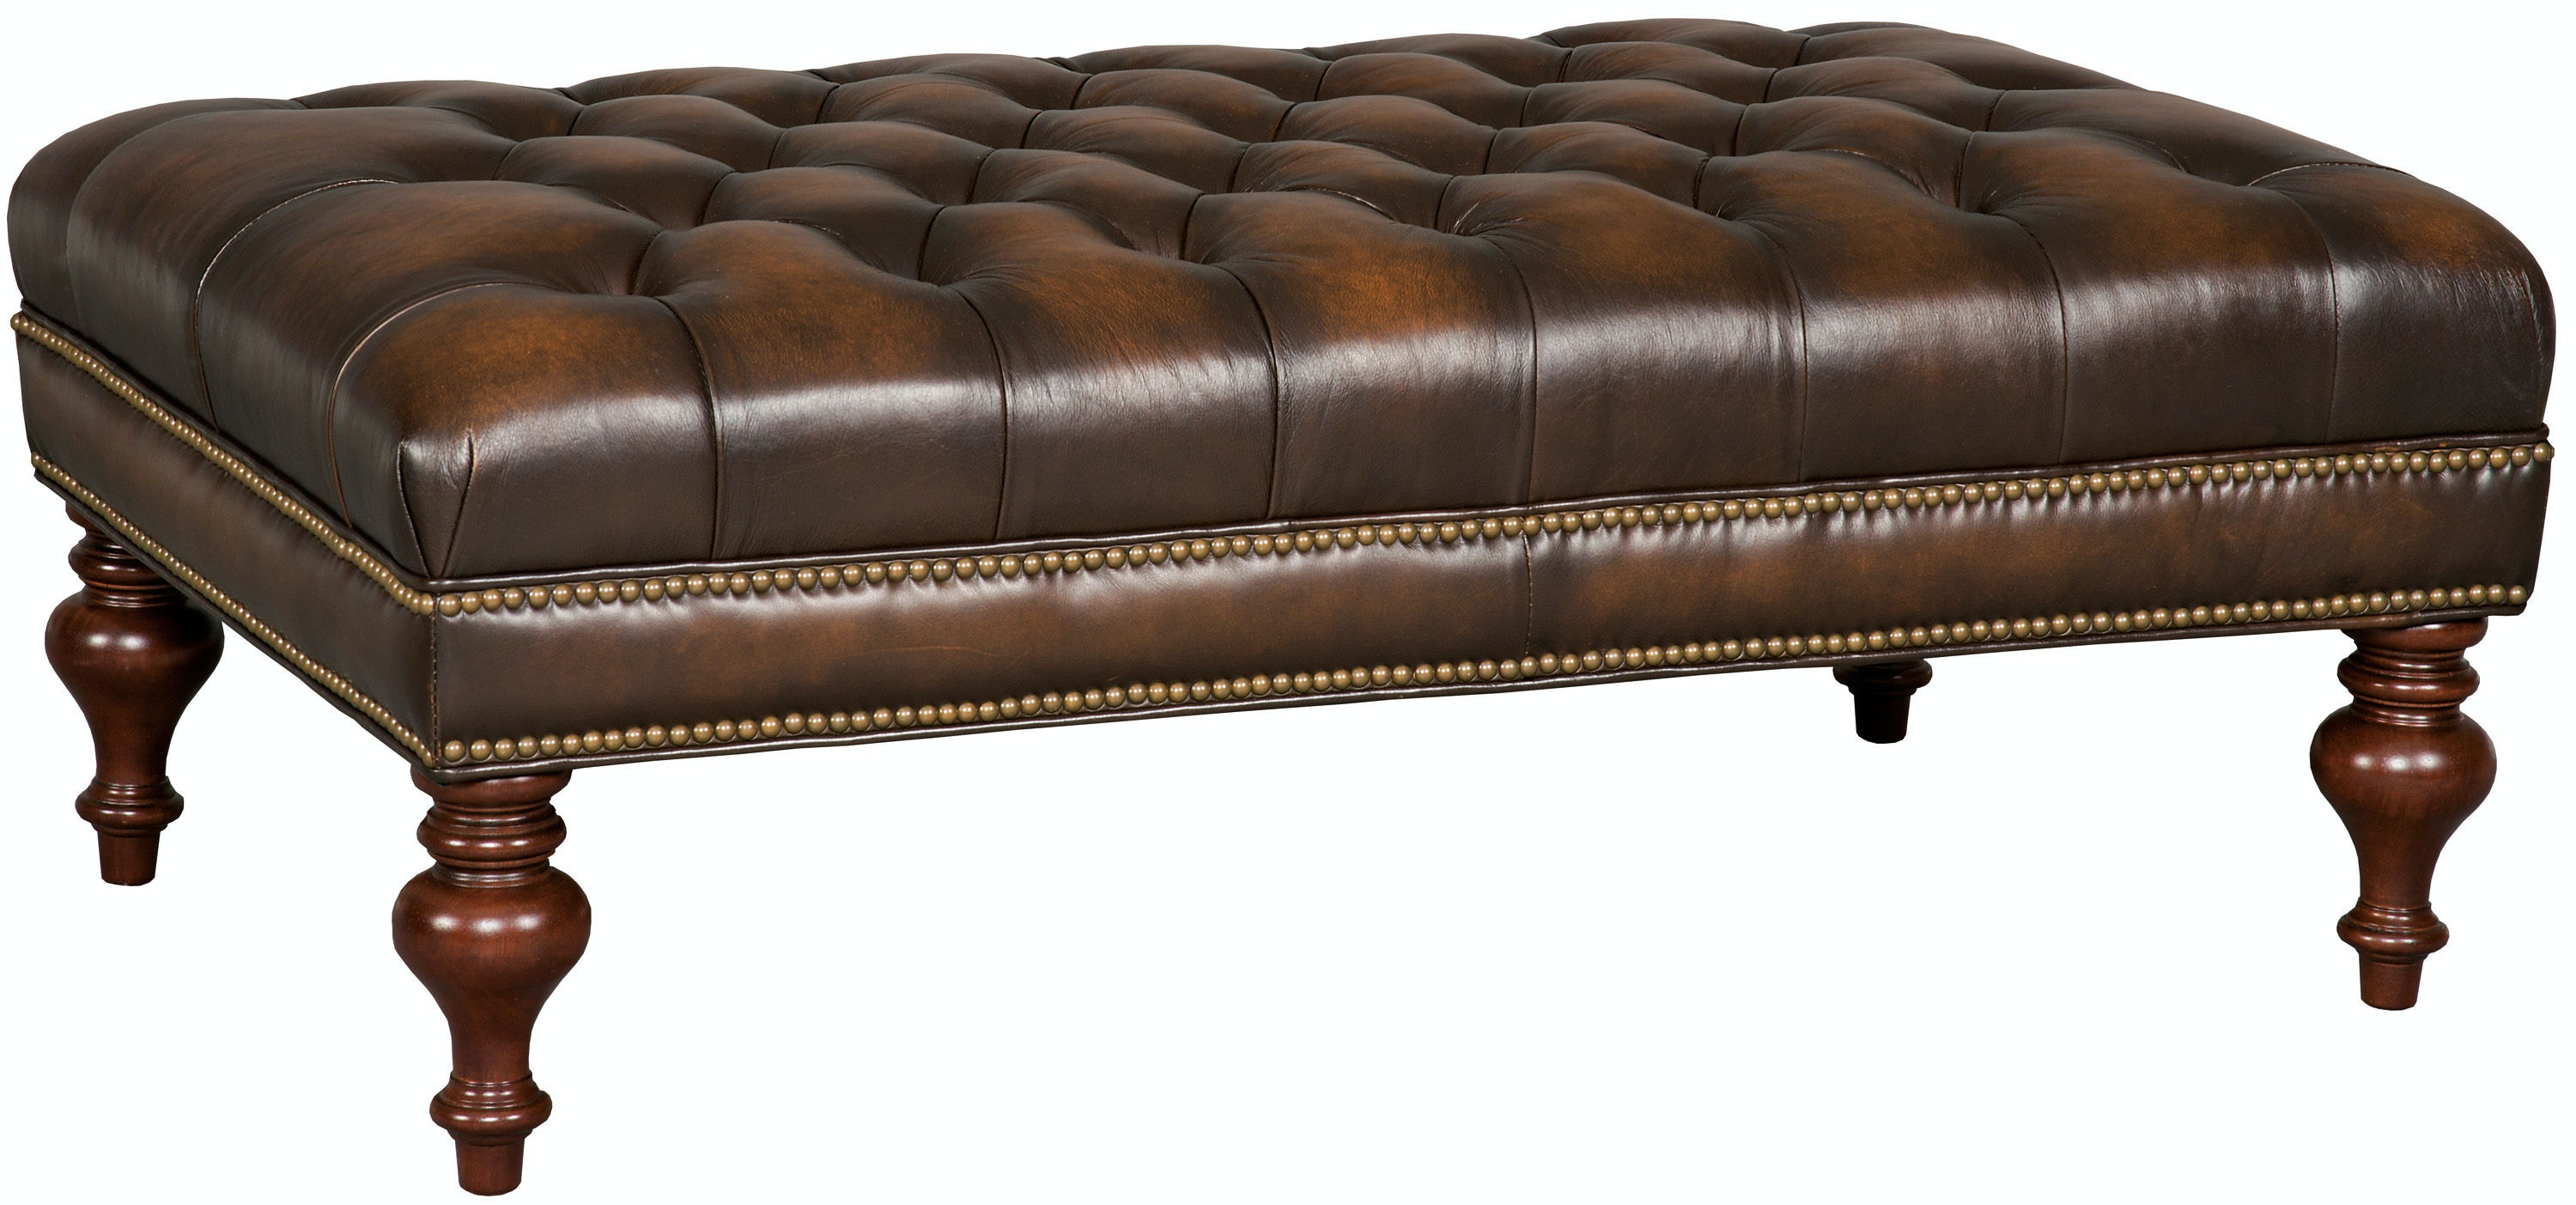 Kingley Tufted Cocktail Ottoman CO385-085